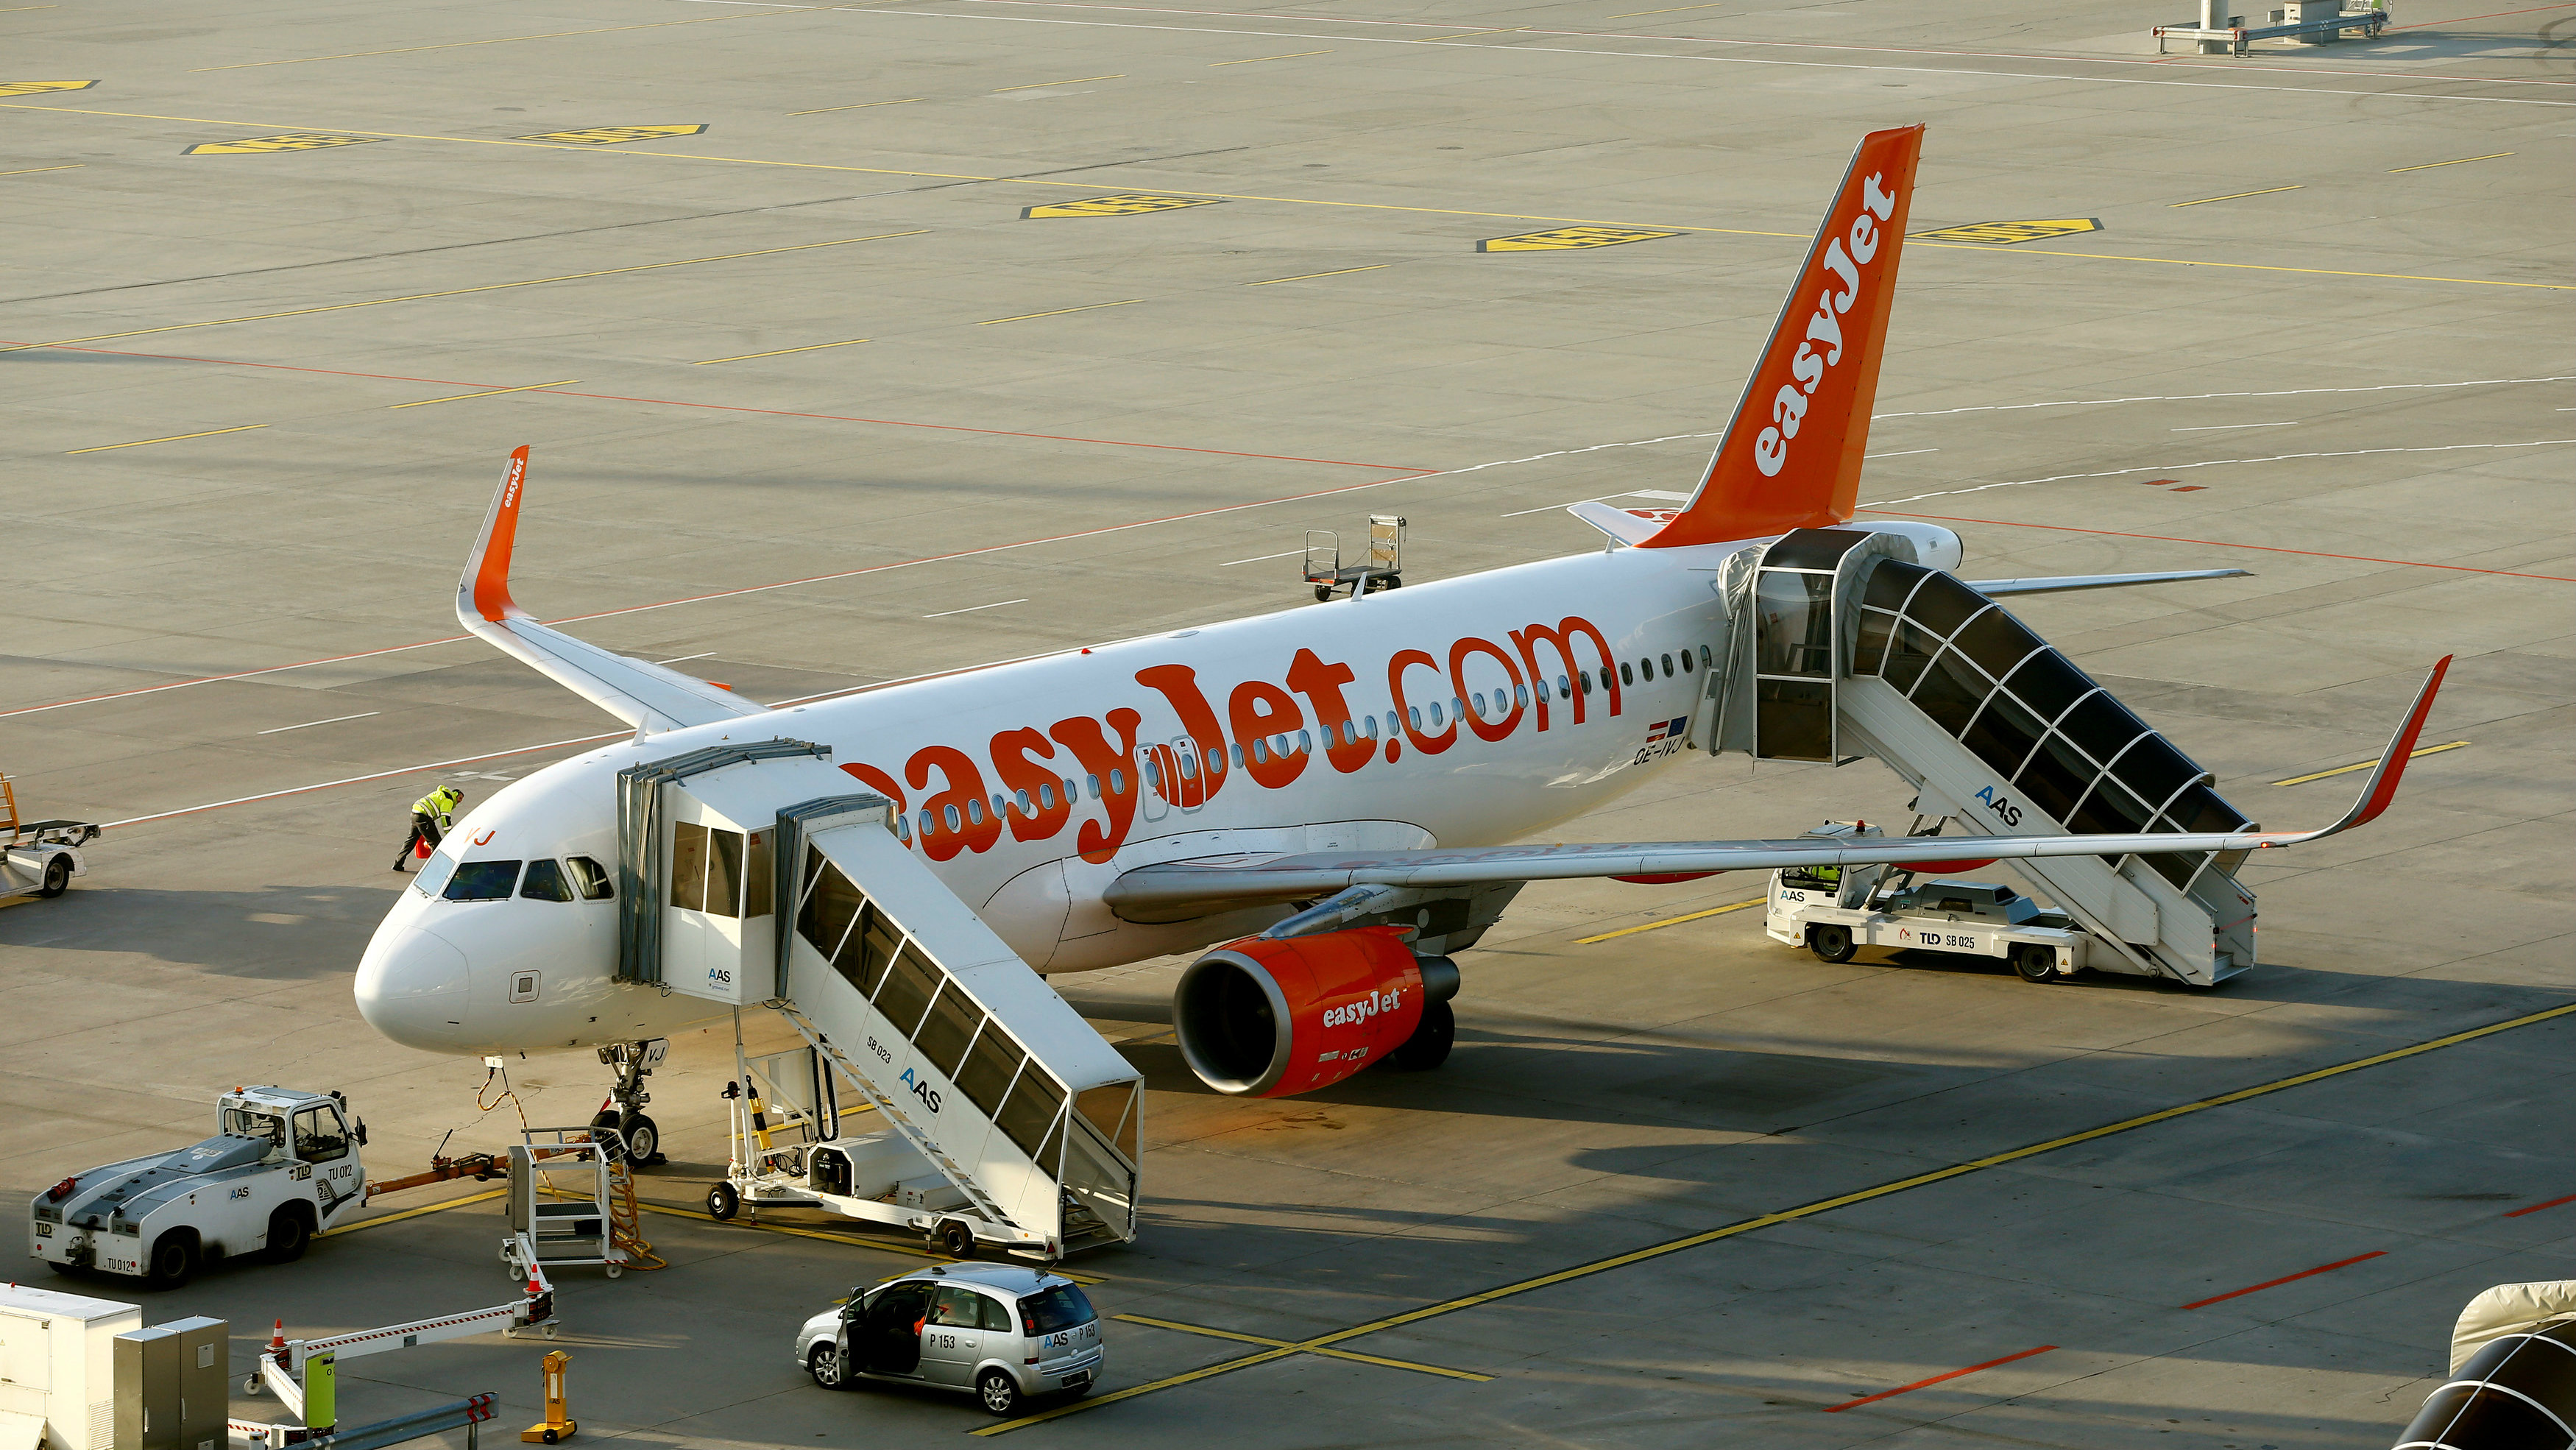 An EasyJet Airbus A320-200 aircraft is seen at Zurich Airport, Switzerland January 9, 2018.